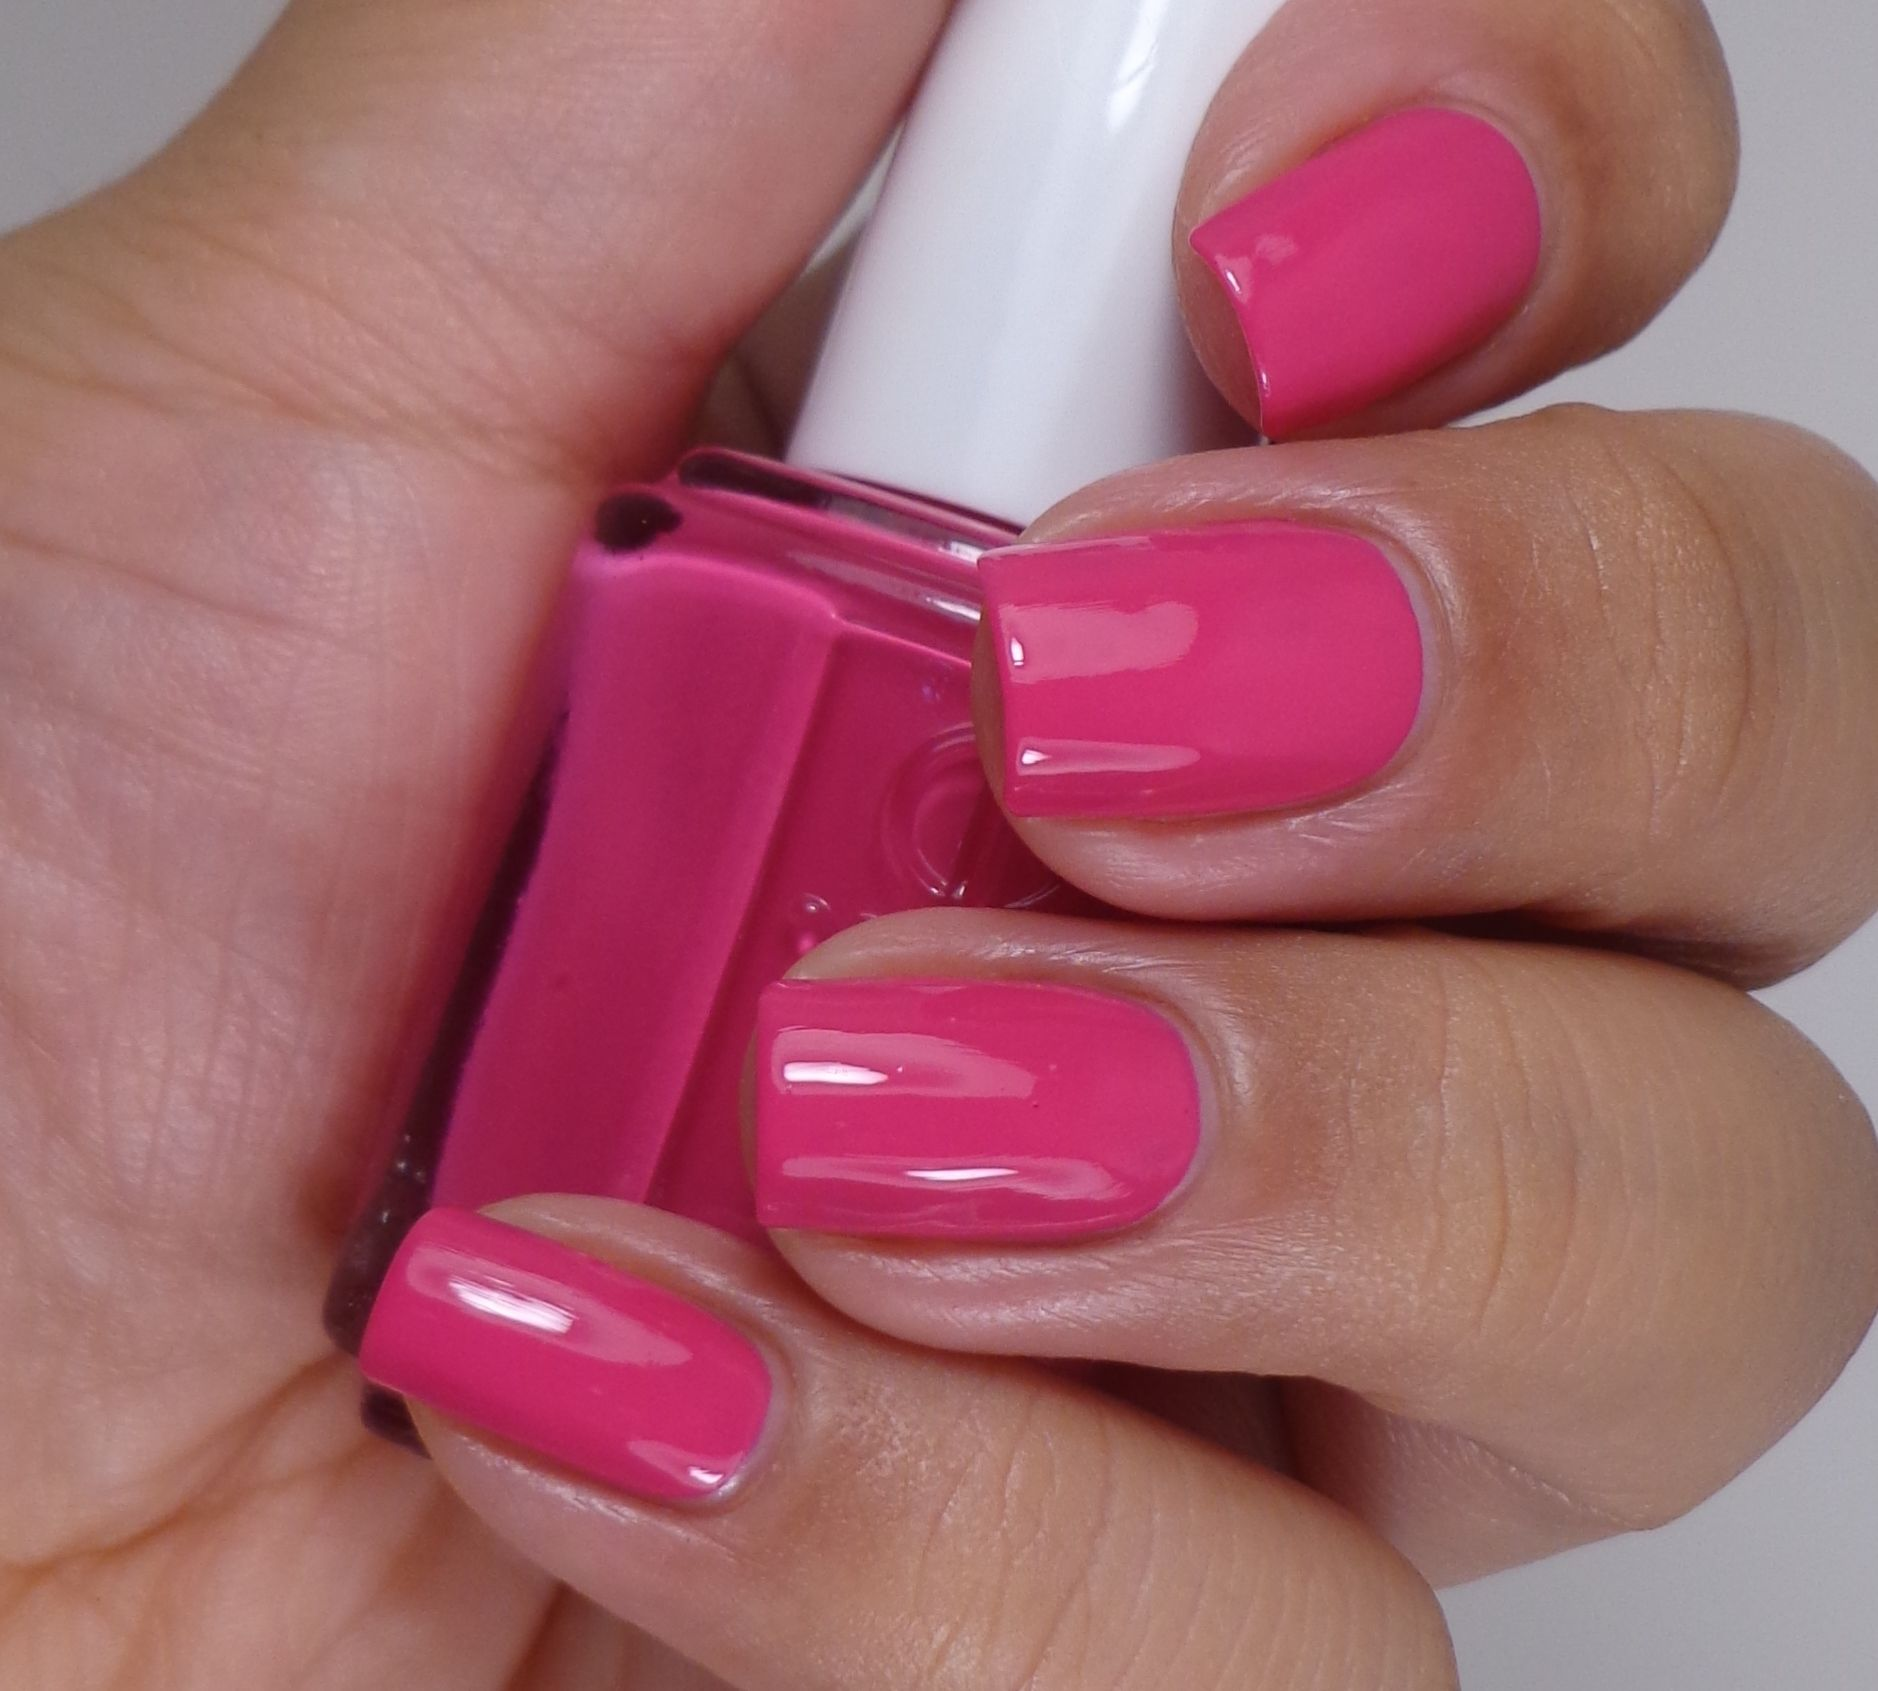 Essie Pinking About You Collection BCA 2014 | Mani pedi, Pedi and ...